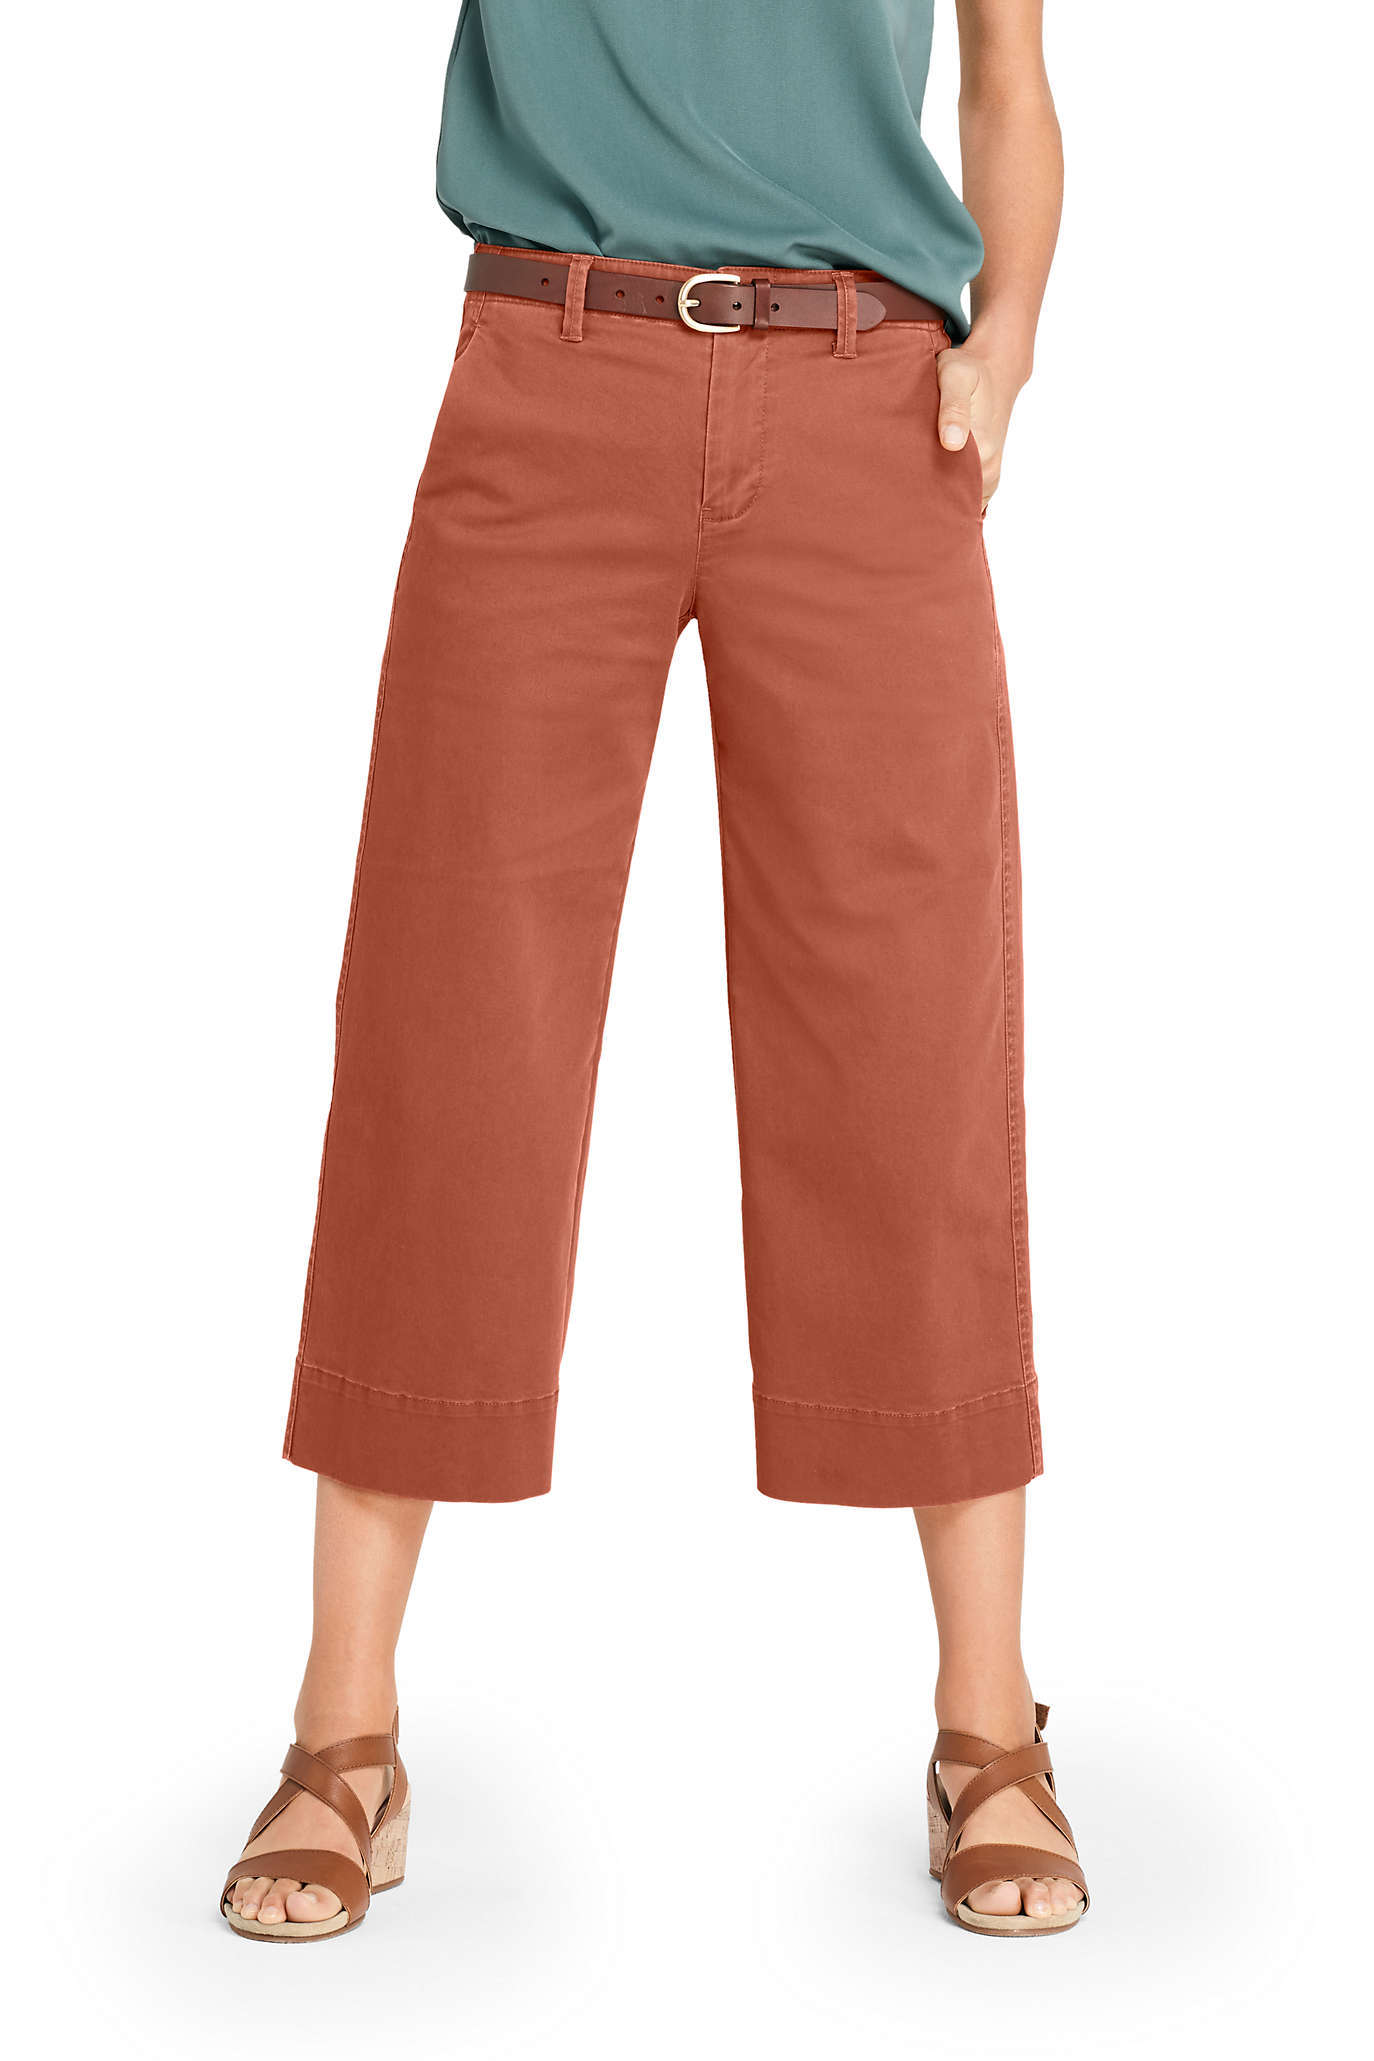 Women's Washable Wool Plain Comfort Trousers